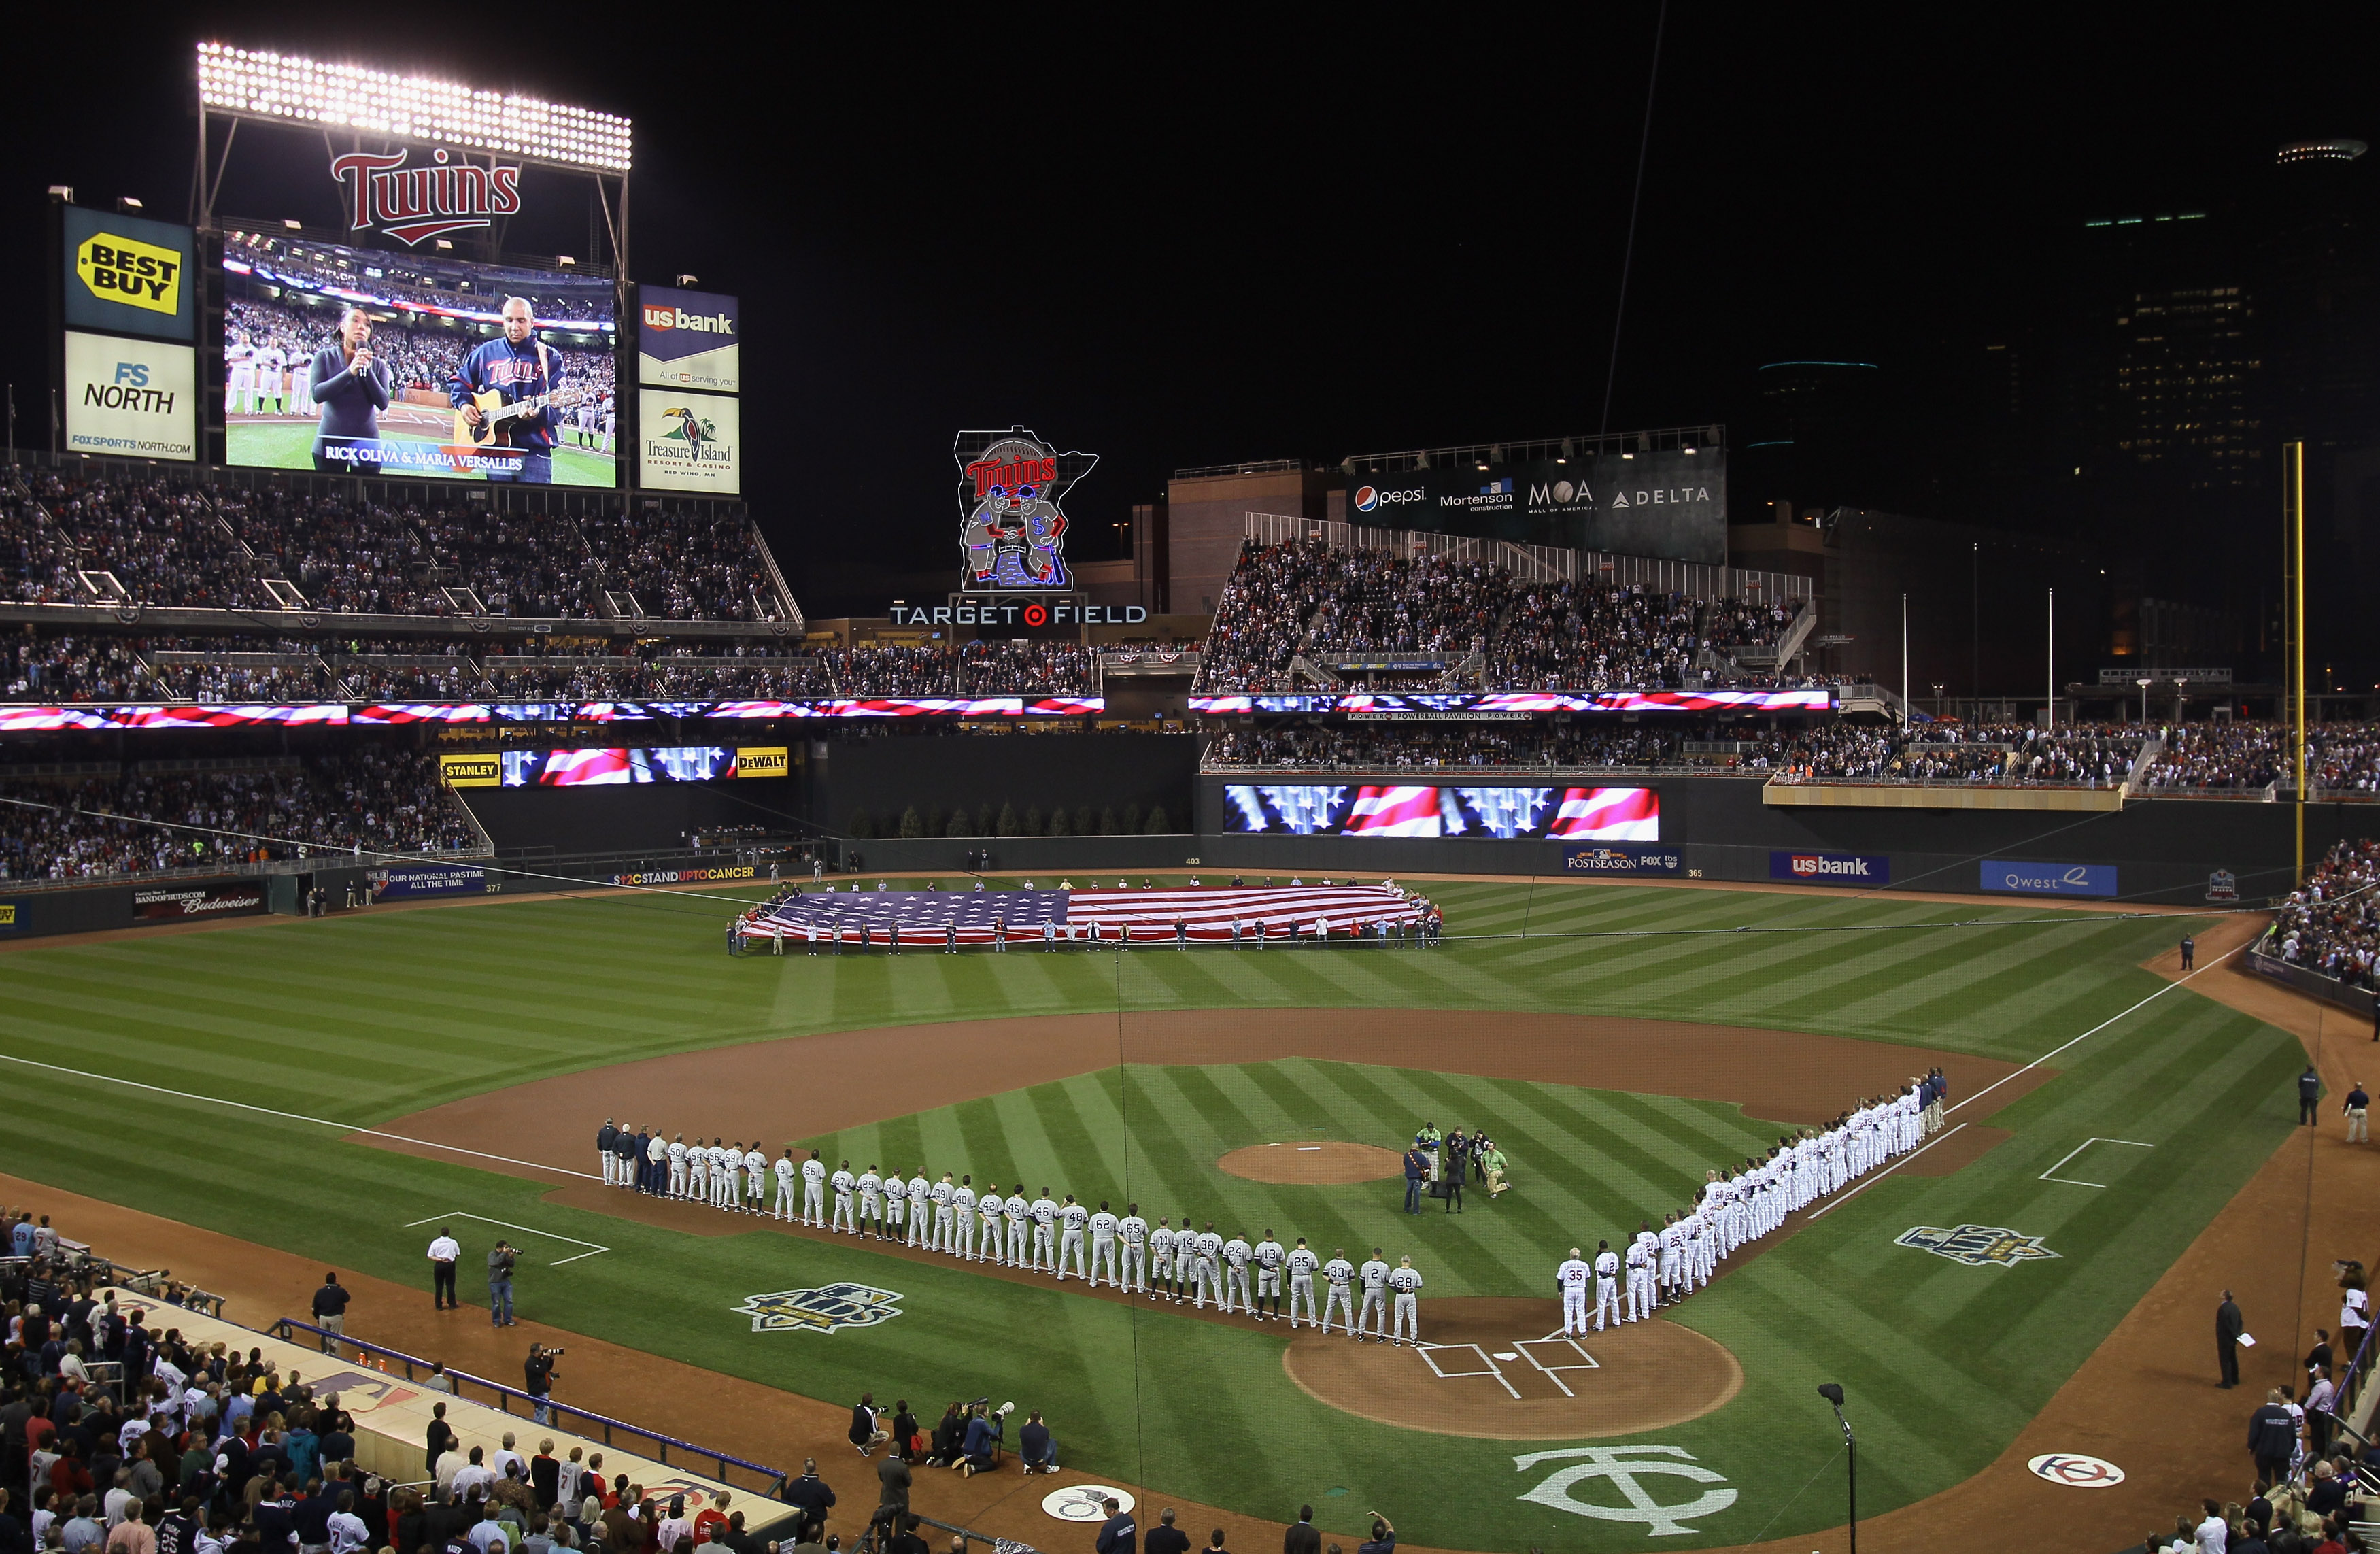 MINNEAPOLIS - OCTOBER 06:  The Minnesota Twins  and the New York Yankees line up before game one of the ALDS on October 6, 2010 at Target Field in Minneapolis, Minnesota.  (Photo by Elsa/Getty Images)